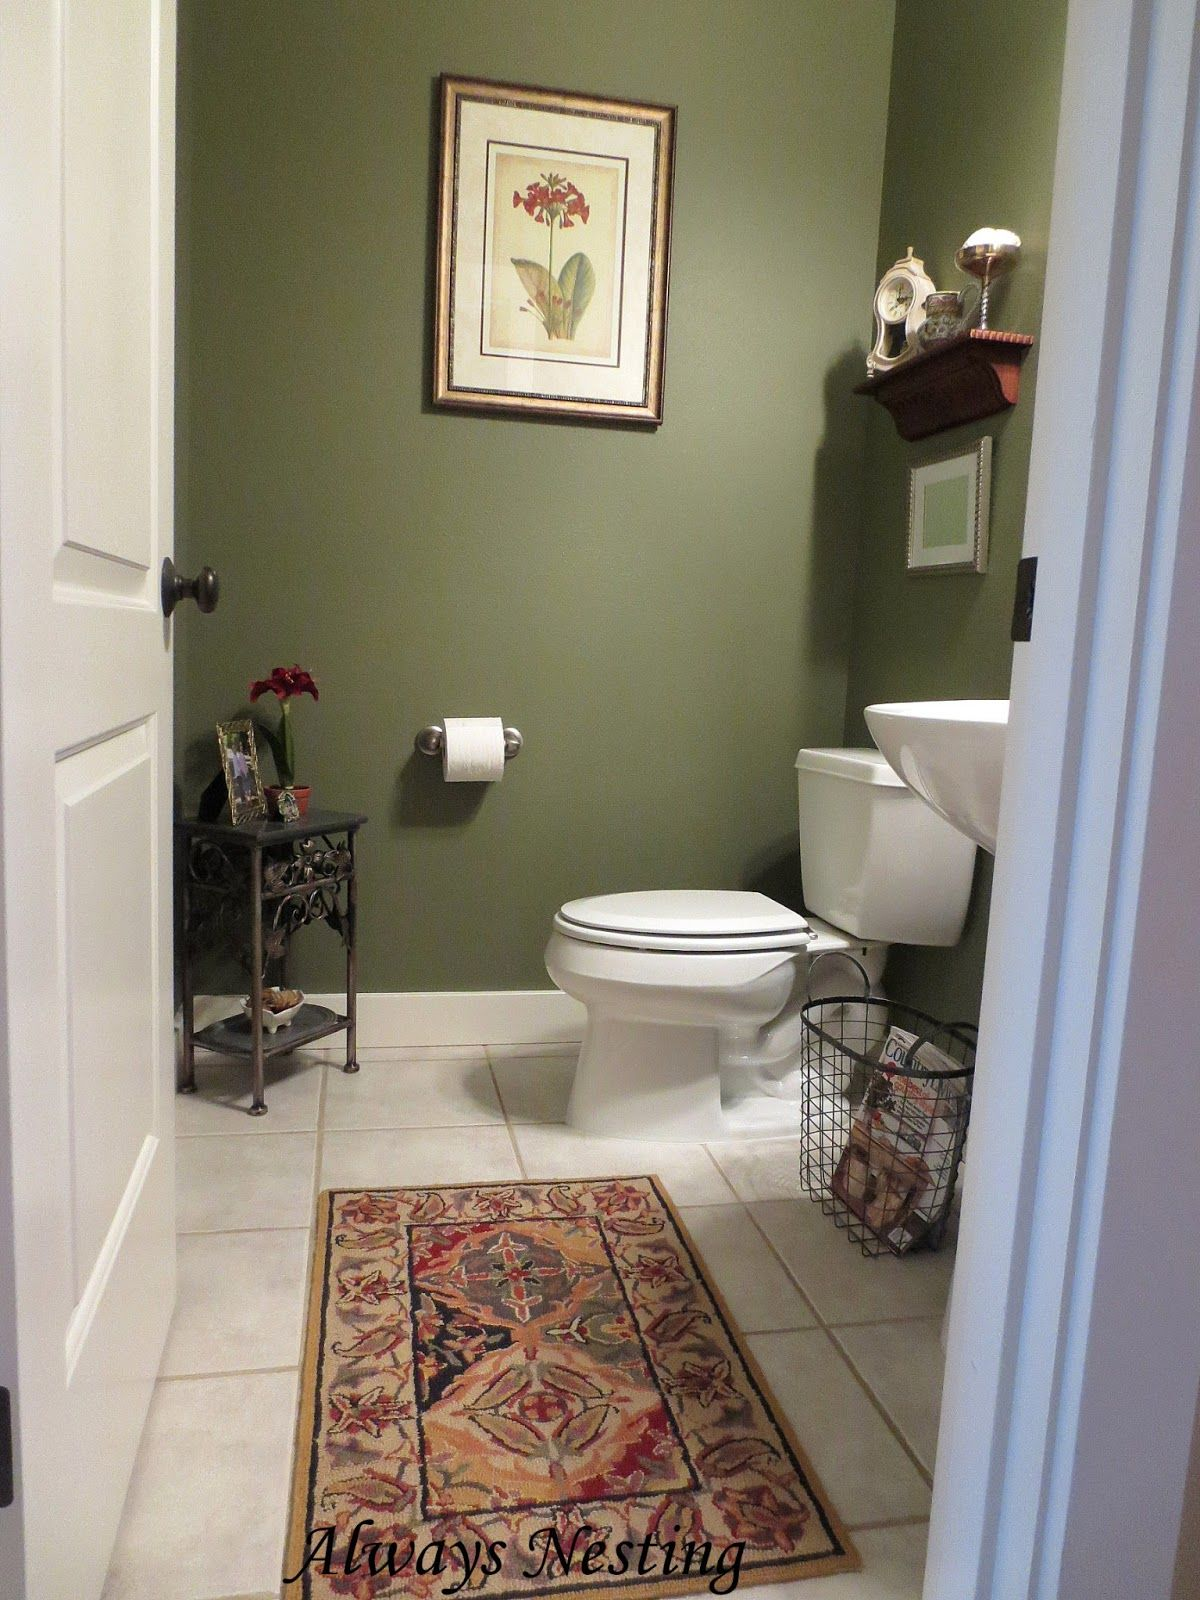 10 Images About Powder Room Ideas On Pinterest Copper White